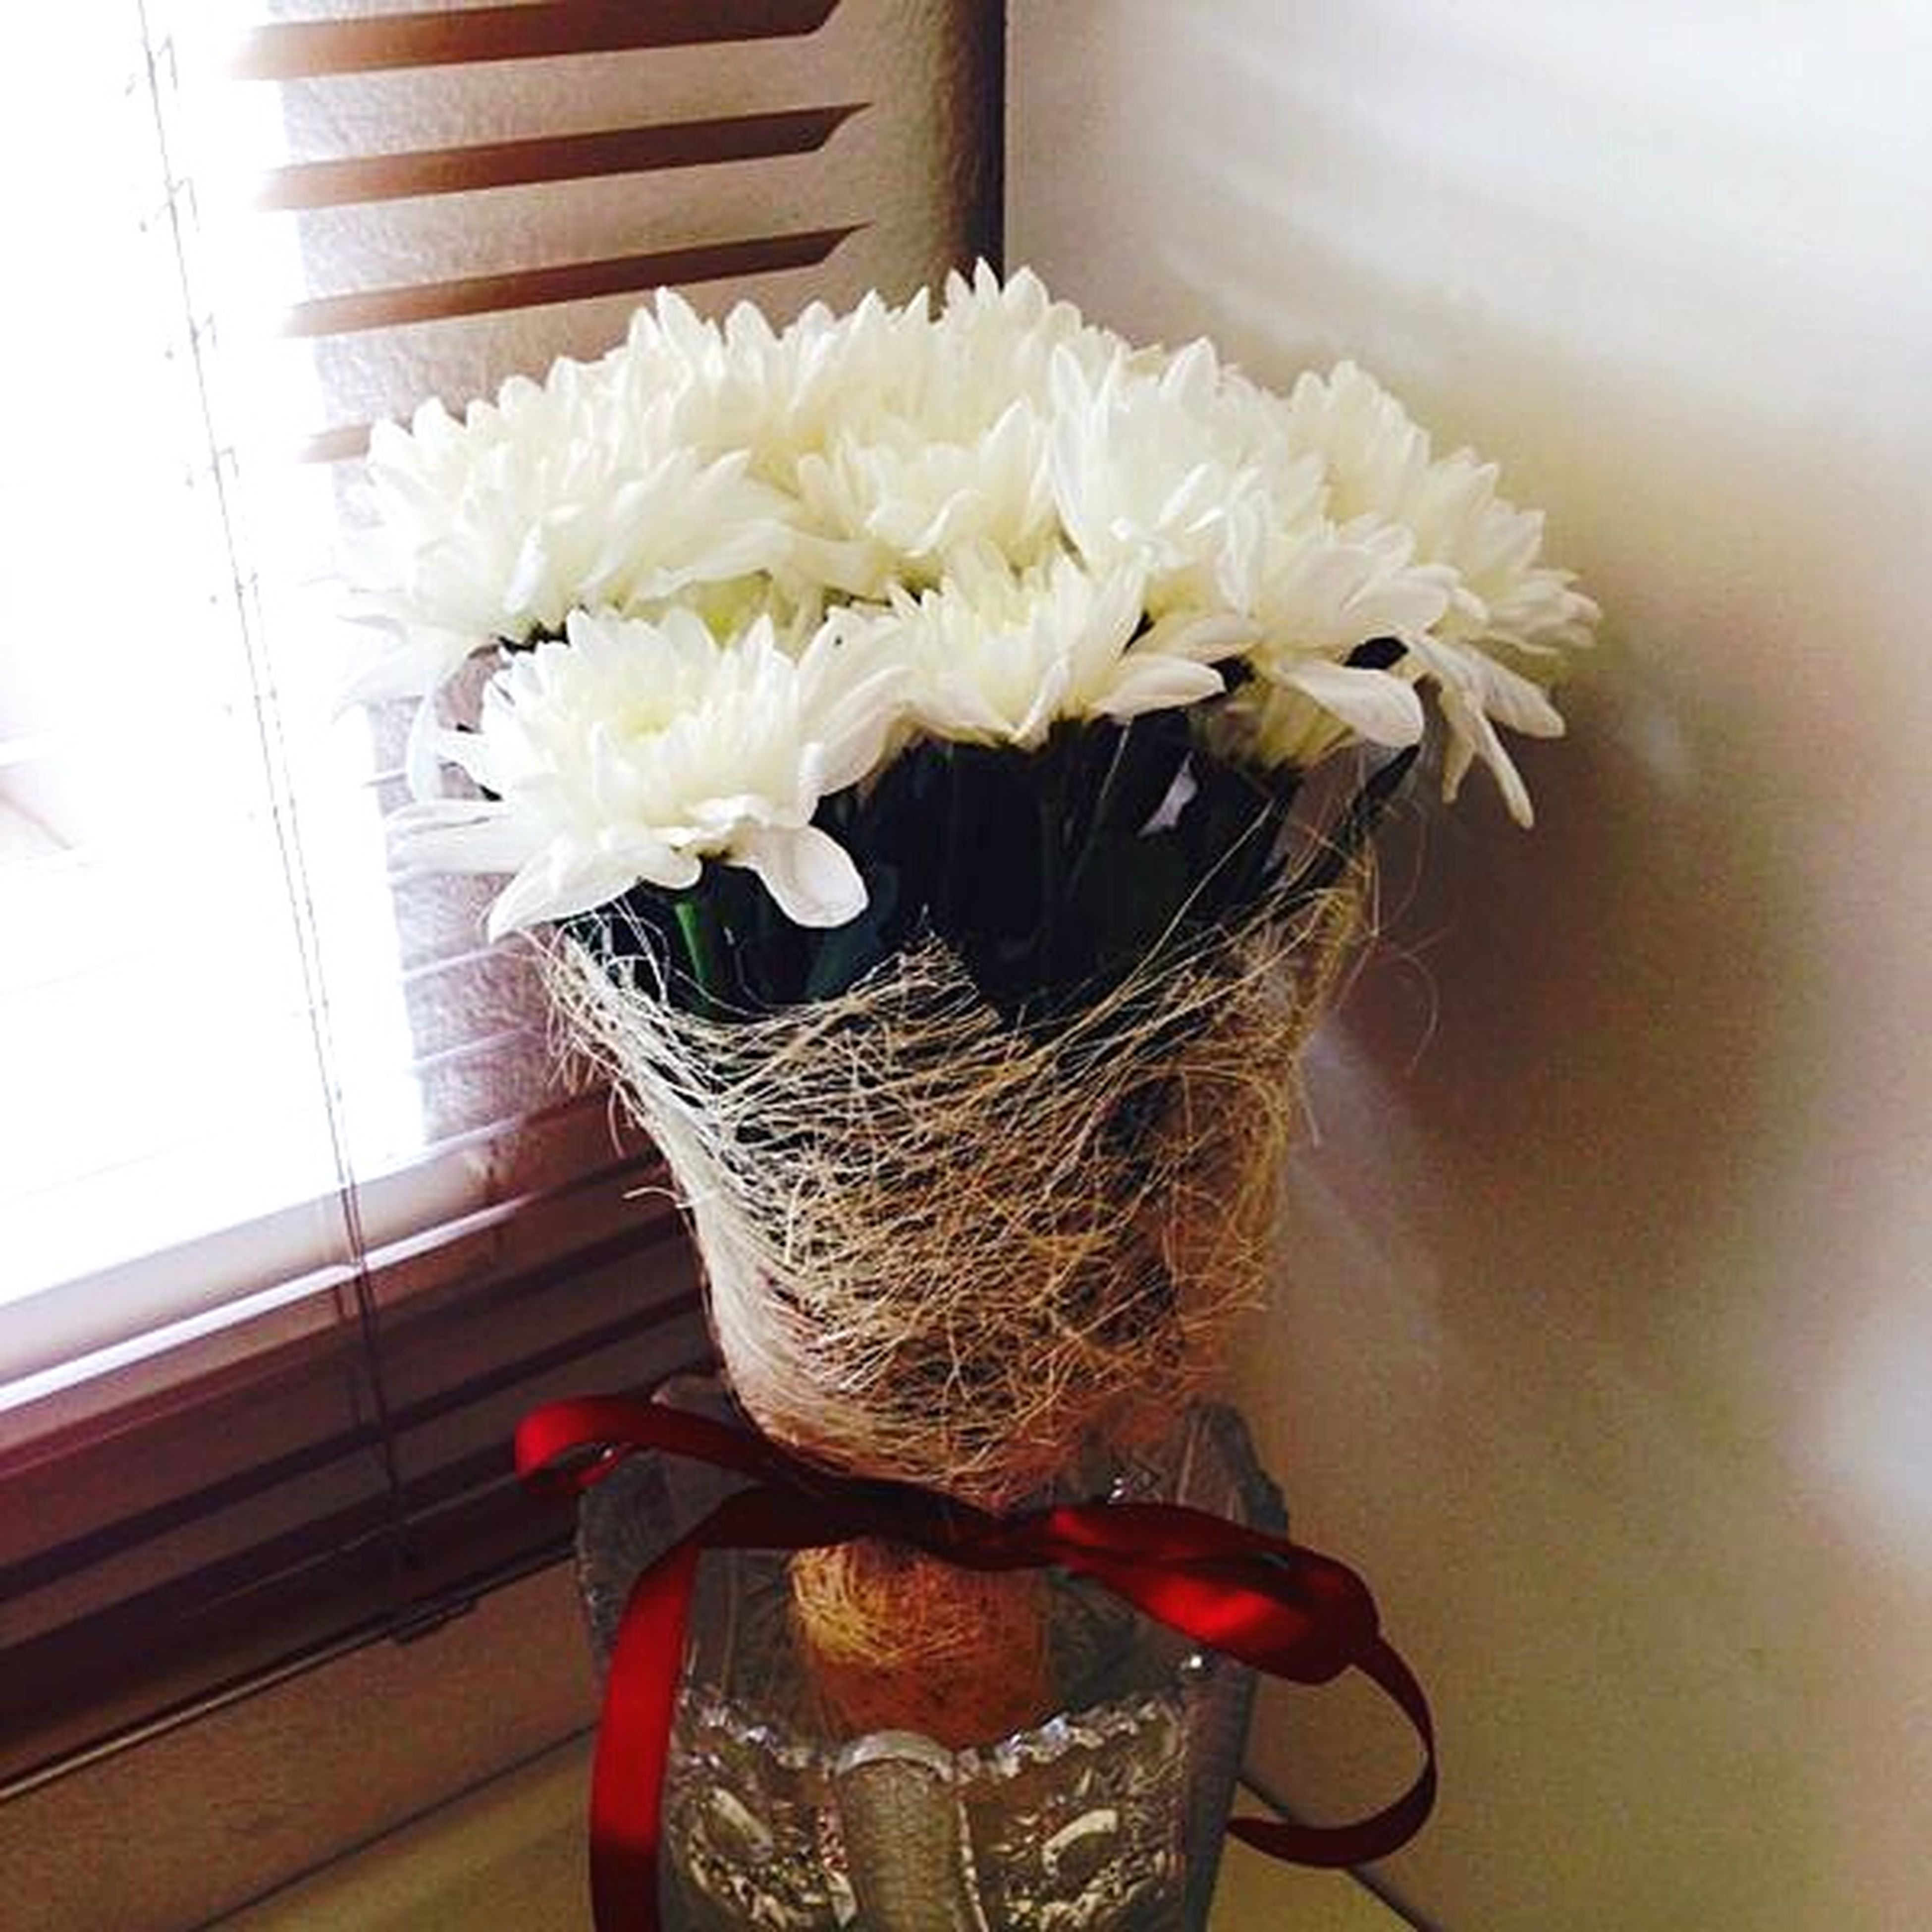 flower, indoors, vase, home interior, white color, fragility, flower head, petal, freshness, wall - building feature, close-up, table, no people, white, potted plant, flower arrangement, wall, softness, single flower, window sill